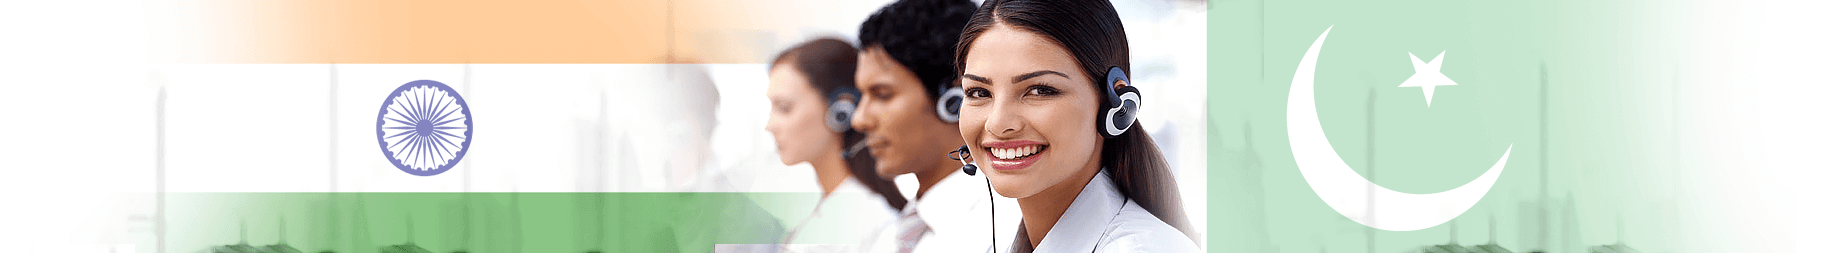 Contact Centers in India | Cheap Call Centers | Inexpensive Call Centers | Philippines | Outsourcing to India | Pakistan Call Centers | Call Centers India | Indian Call Center | Indian Call Centers | Call Centers in Pakistan | Call Centers in Southern Asia | Outsourcing to Pakistan | Pakistani Call Centers